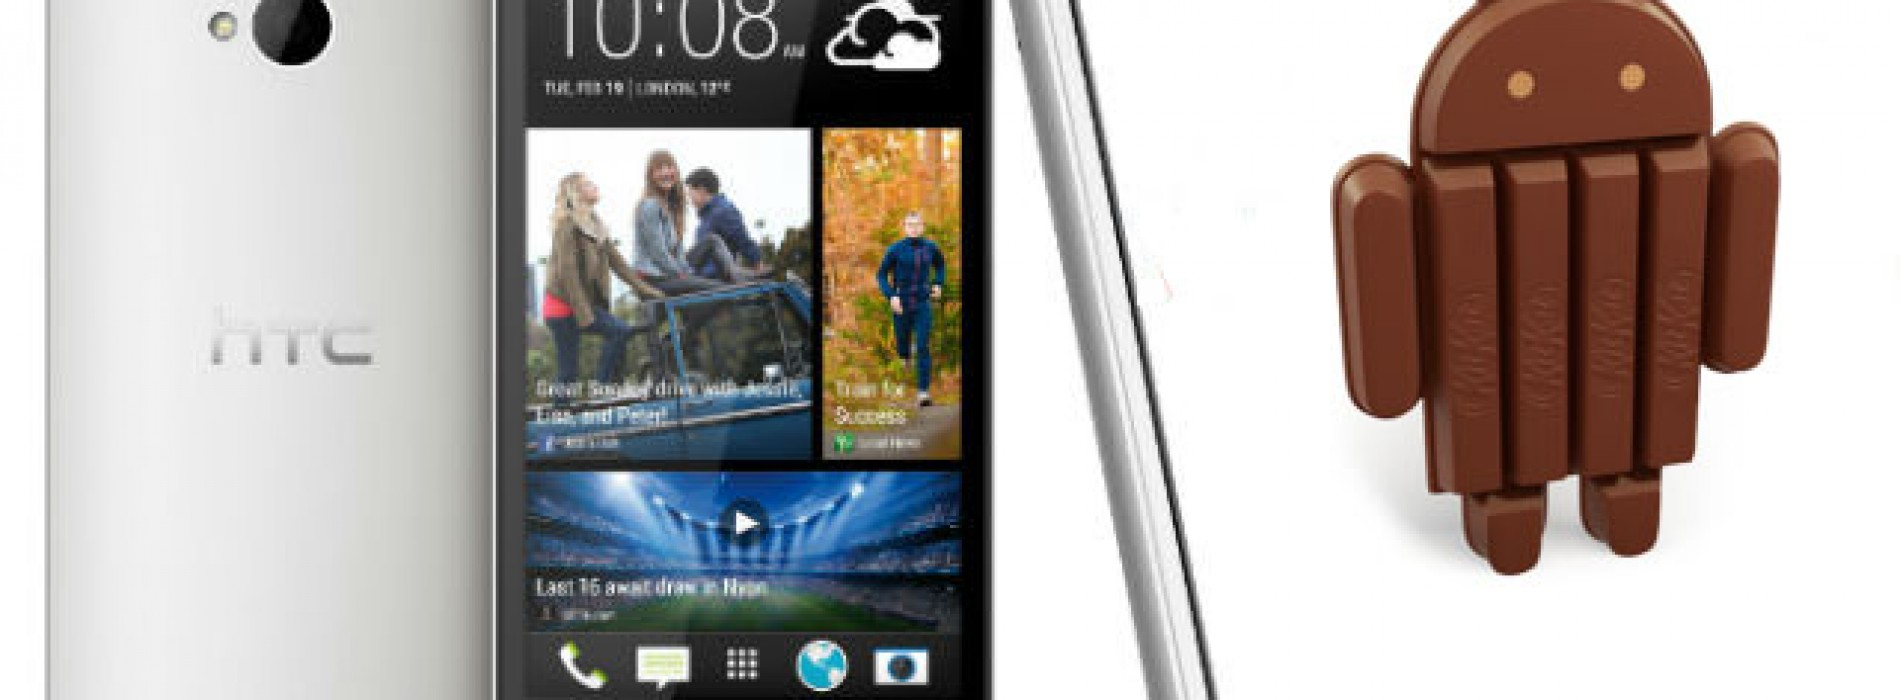 Android 4.4.4 rollout for HTC One M7 and M8 GPE has started